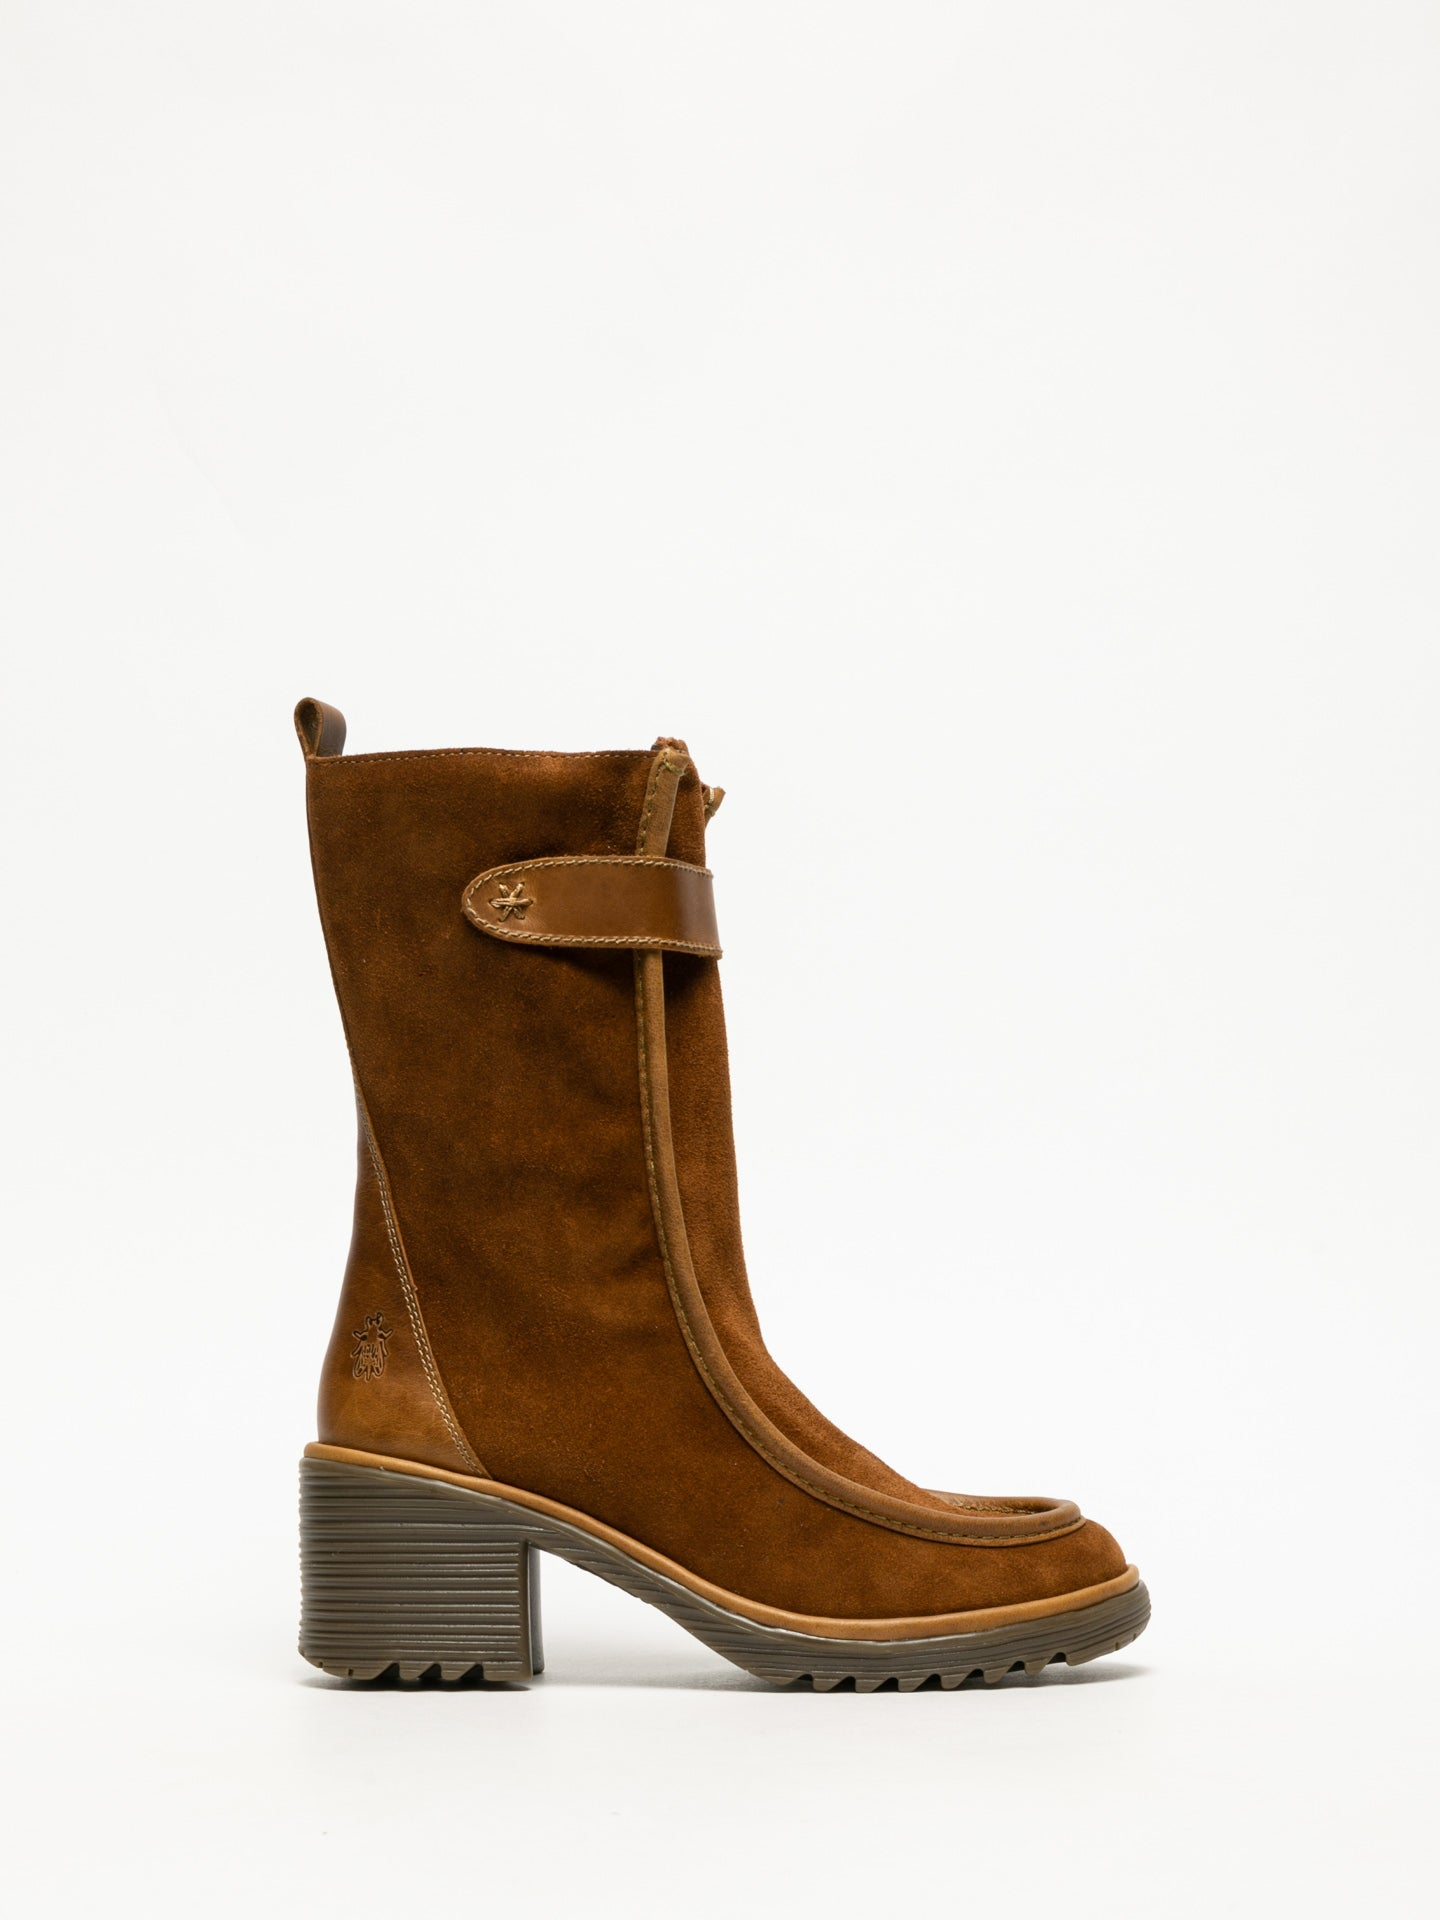 Fly London Peru Zip Up Boots